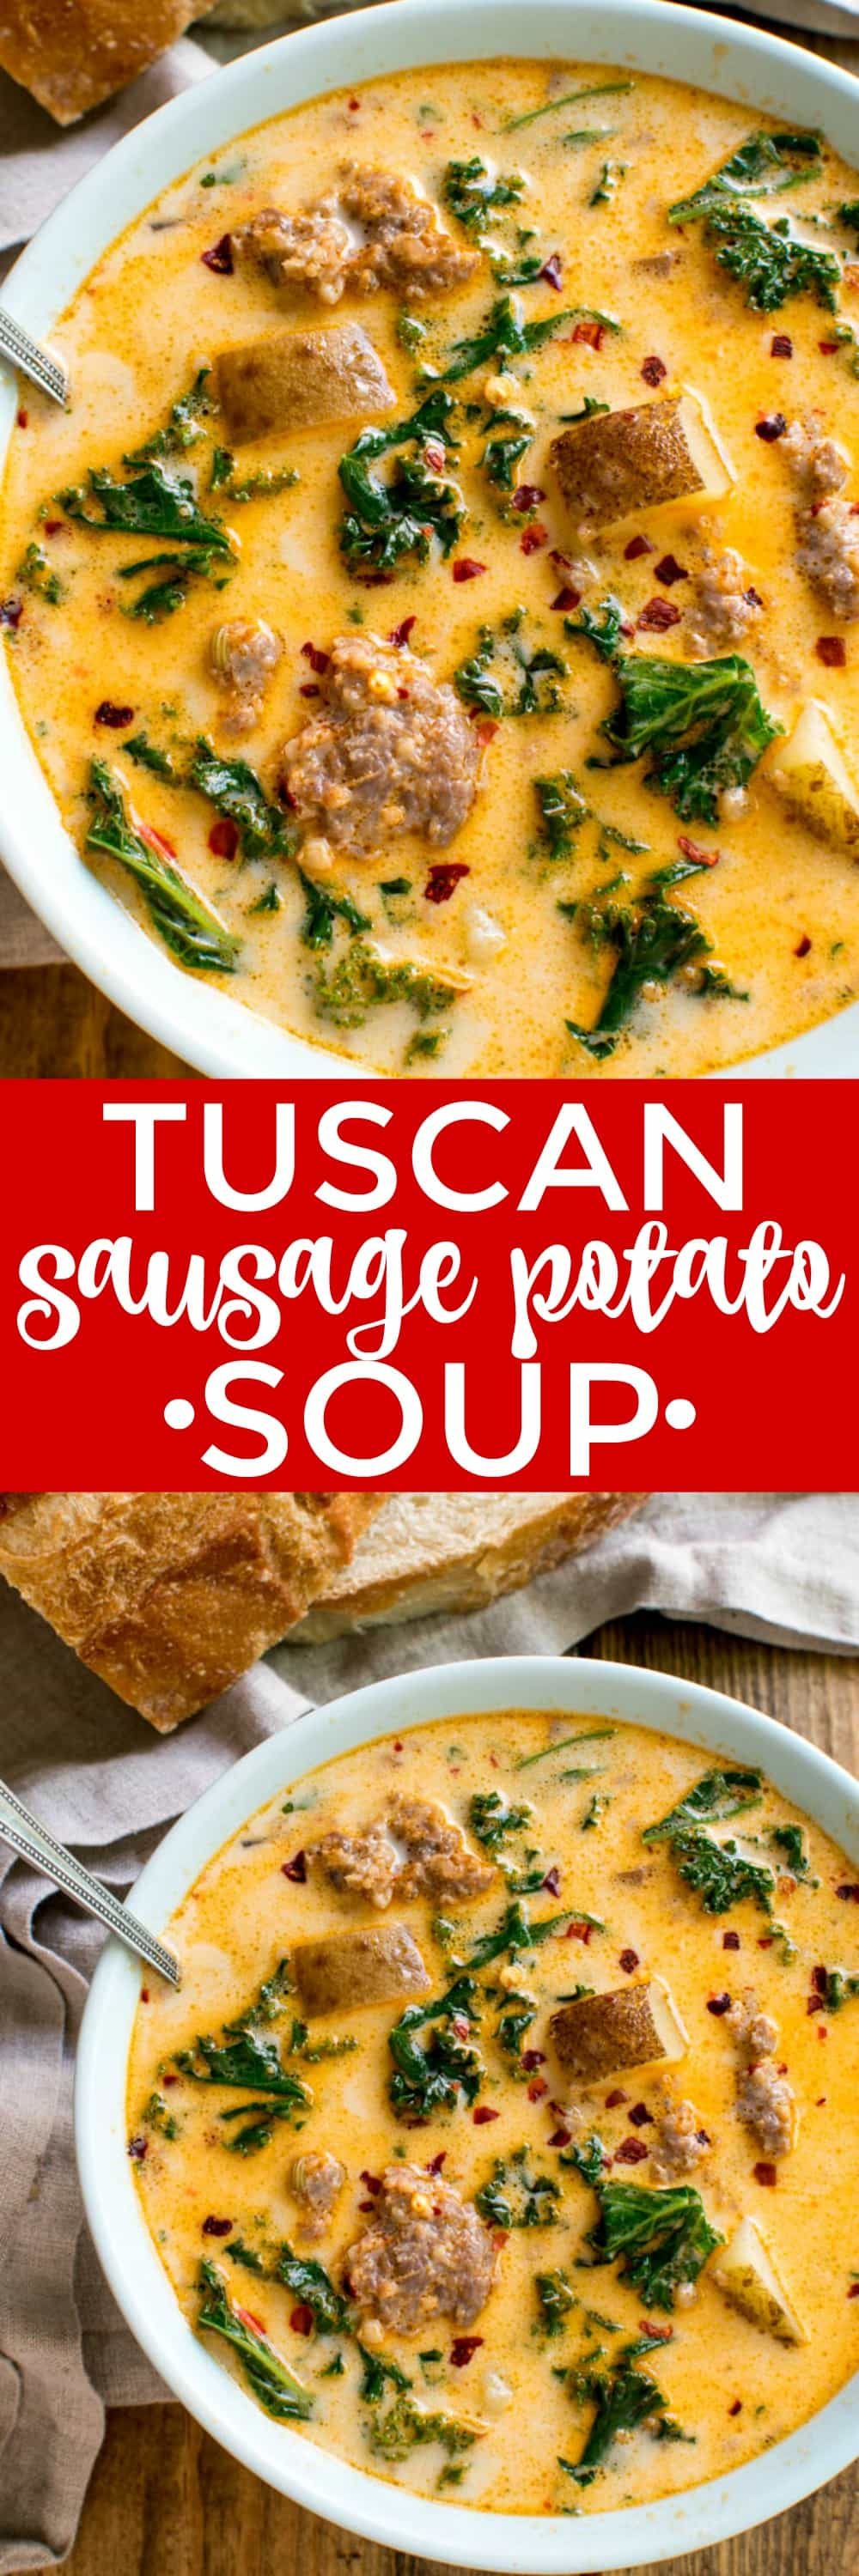 This Tuscan Sausage Potato Soup is perfect for warming up to on a cold day! It's made with just a handful of ingredients and packed with the most delicious flavor! Best of all, it comes together easily in ONE POT...making it ideal for busy weeknights and equally amazing for a lazy Sunday dinner. If you love Italian flavors and like things a little spicy, this Tuscan Sausage Potato Soup is for YOU!